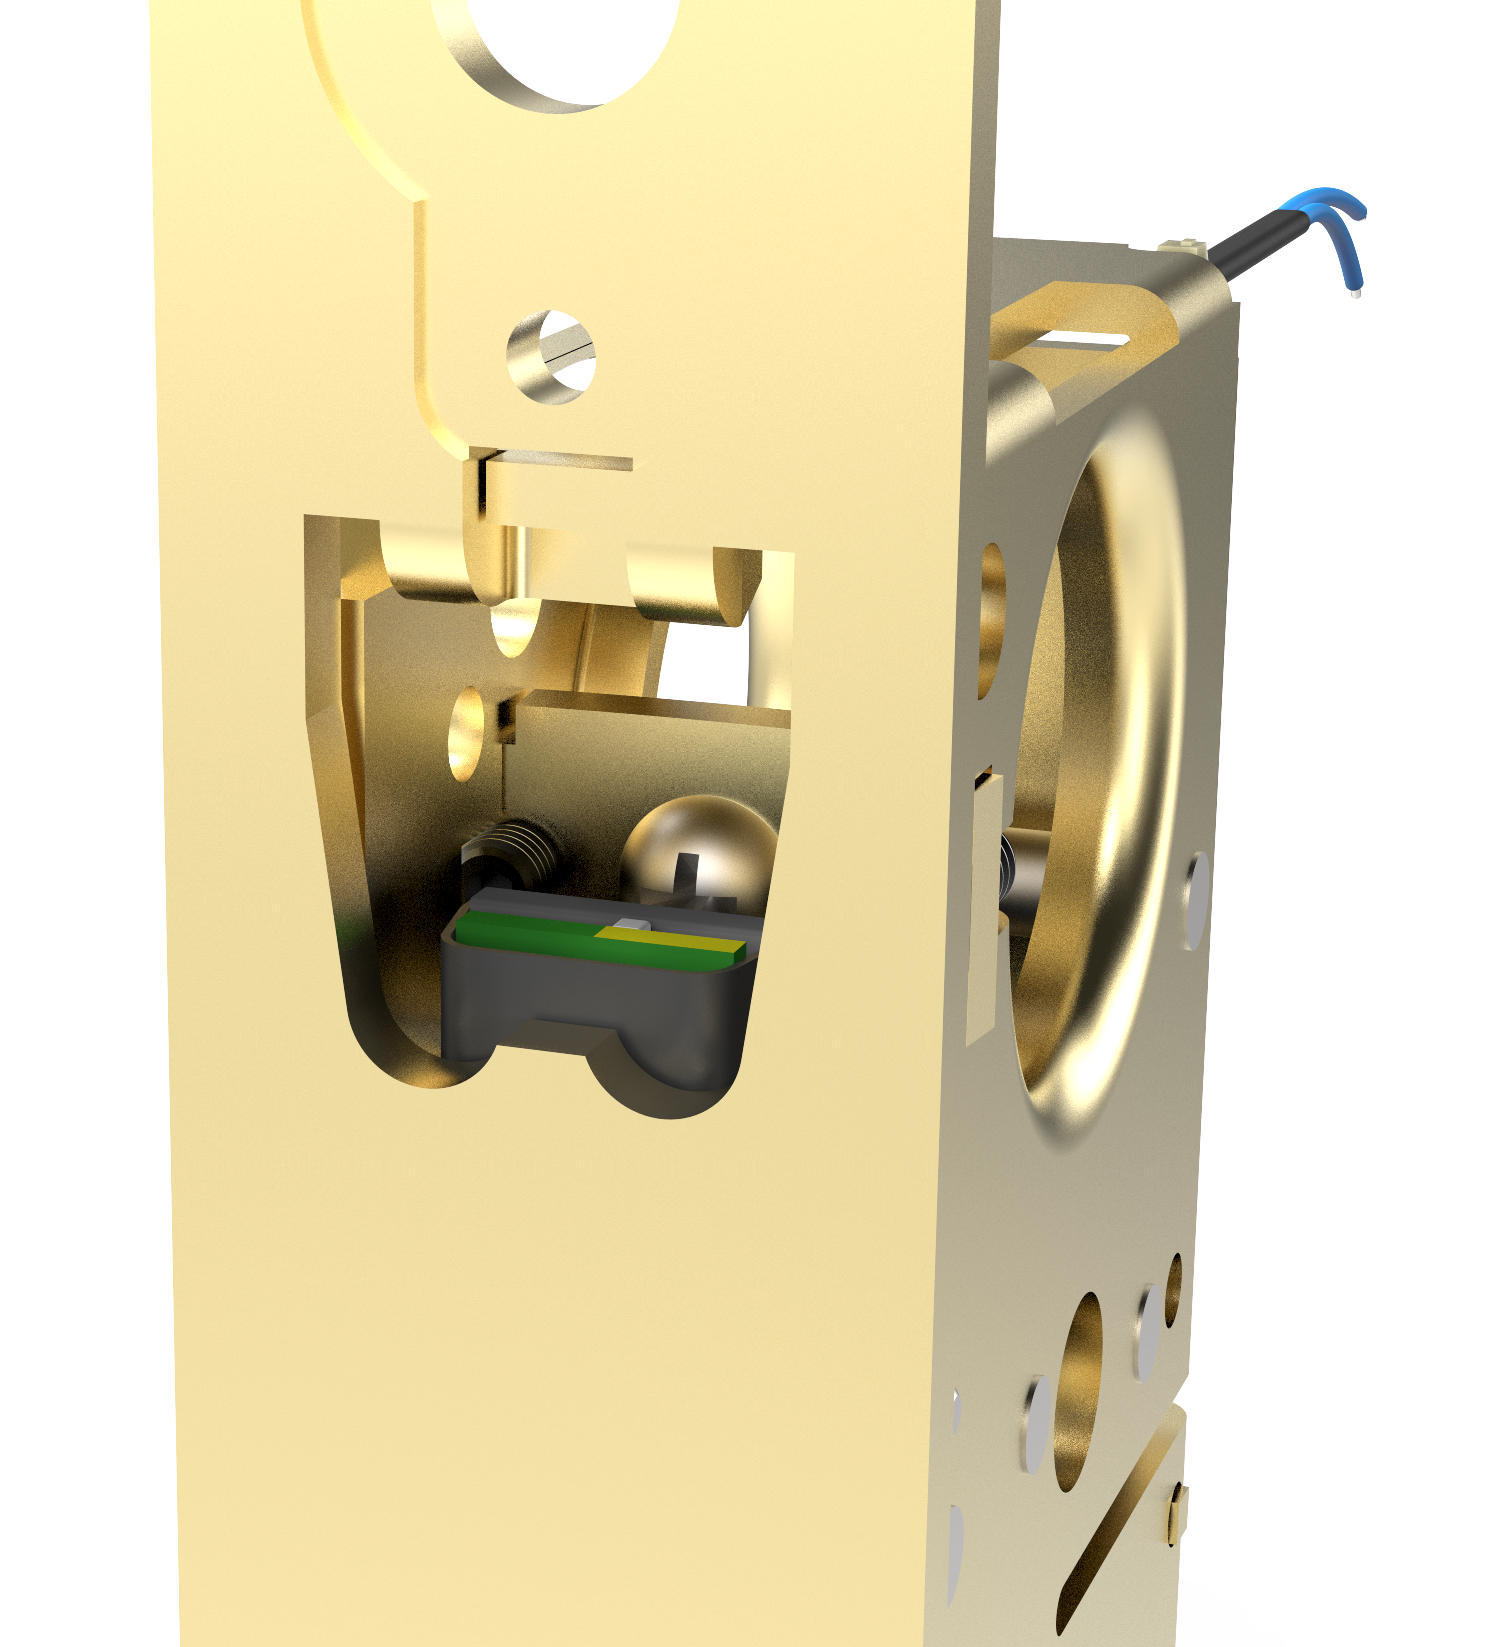 M885XE Motor Drive Electrified Narrow Backset Mortise Lock